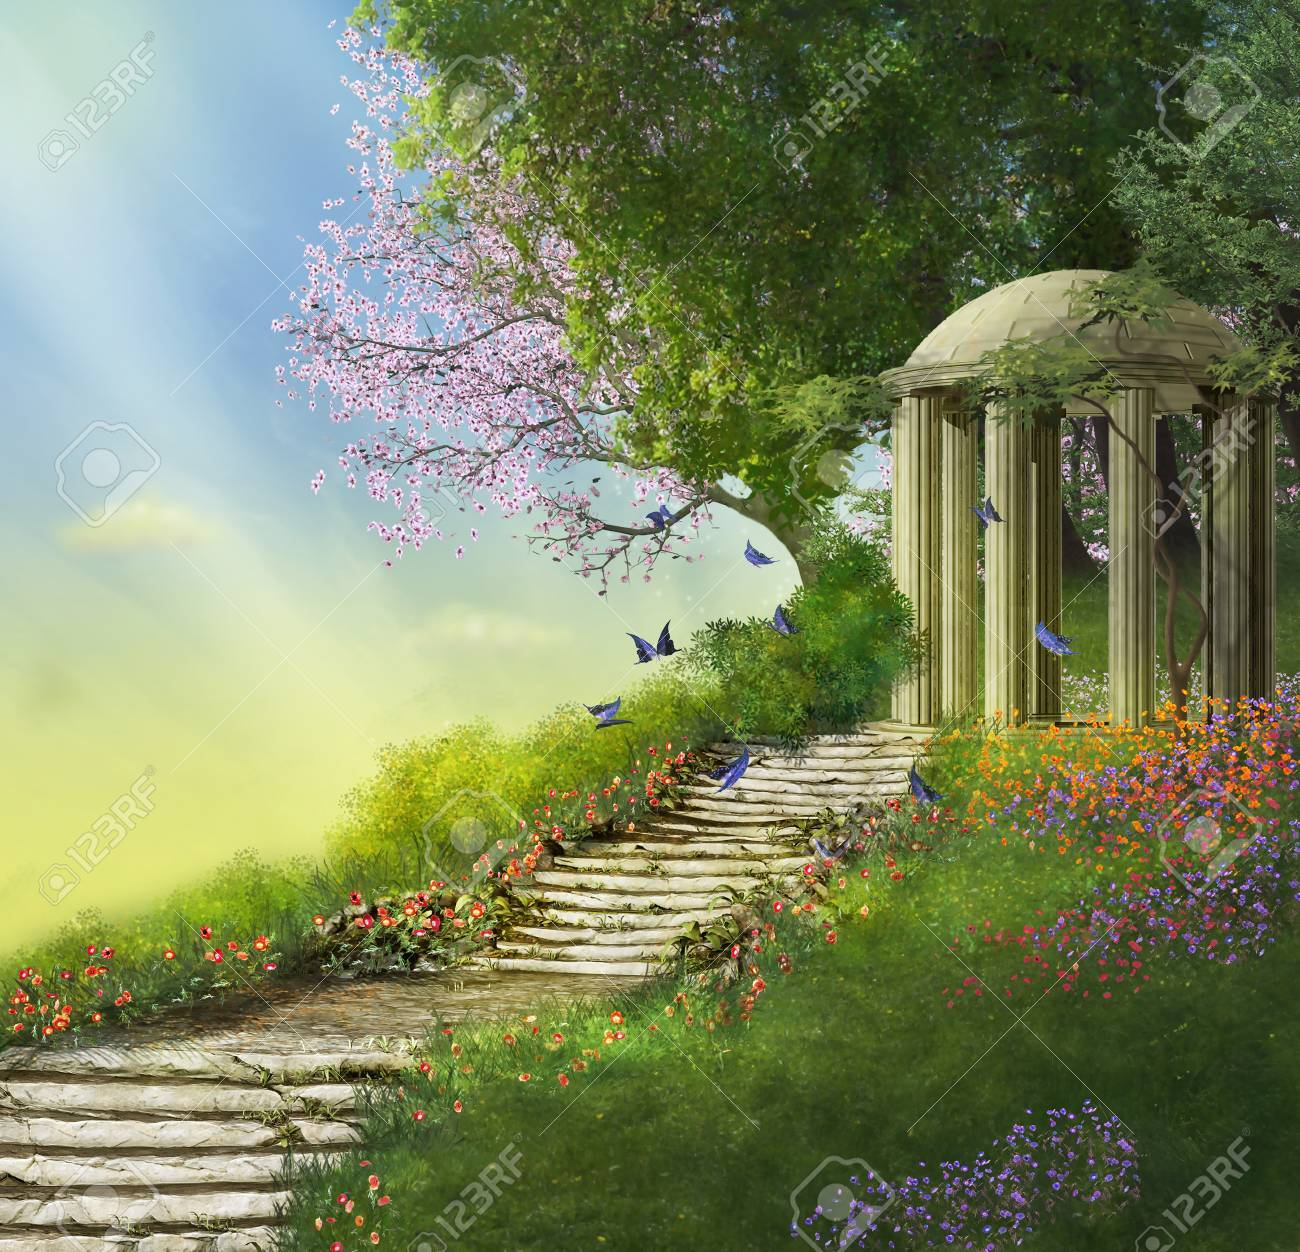 gazebo at the top of a hill with a stone stair and flowers - 56089299